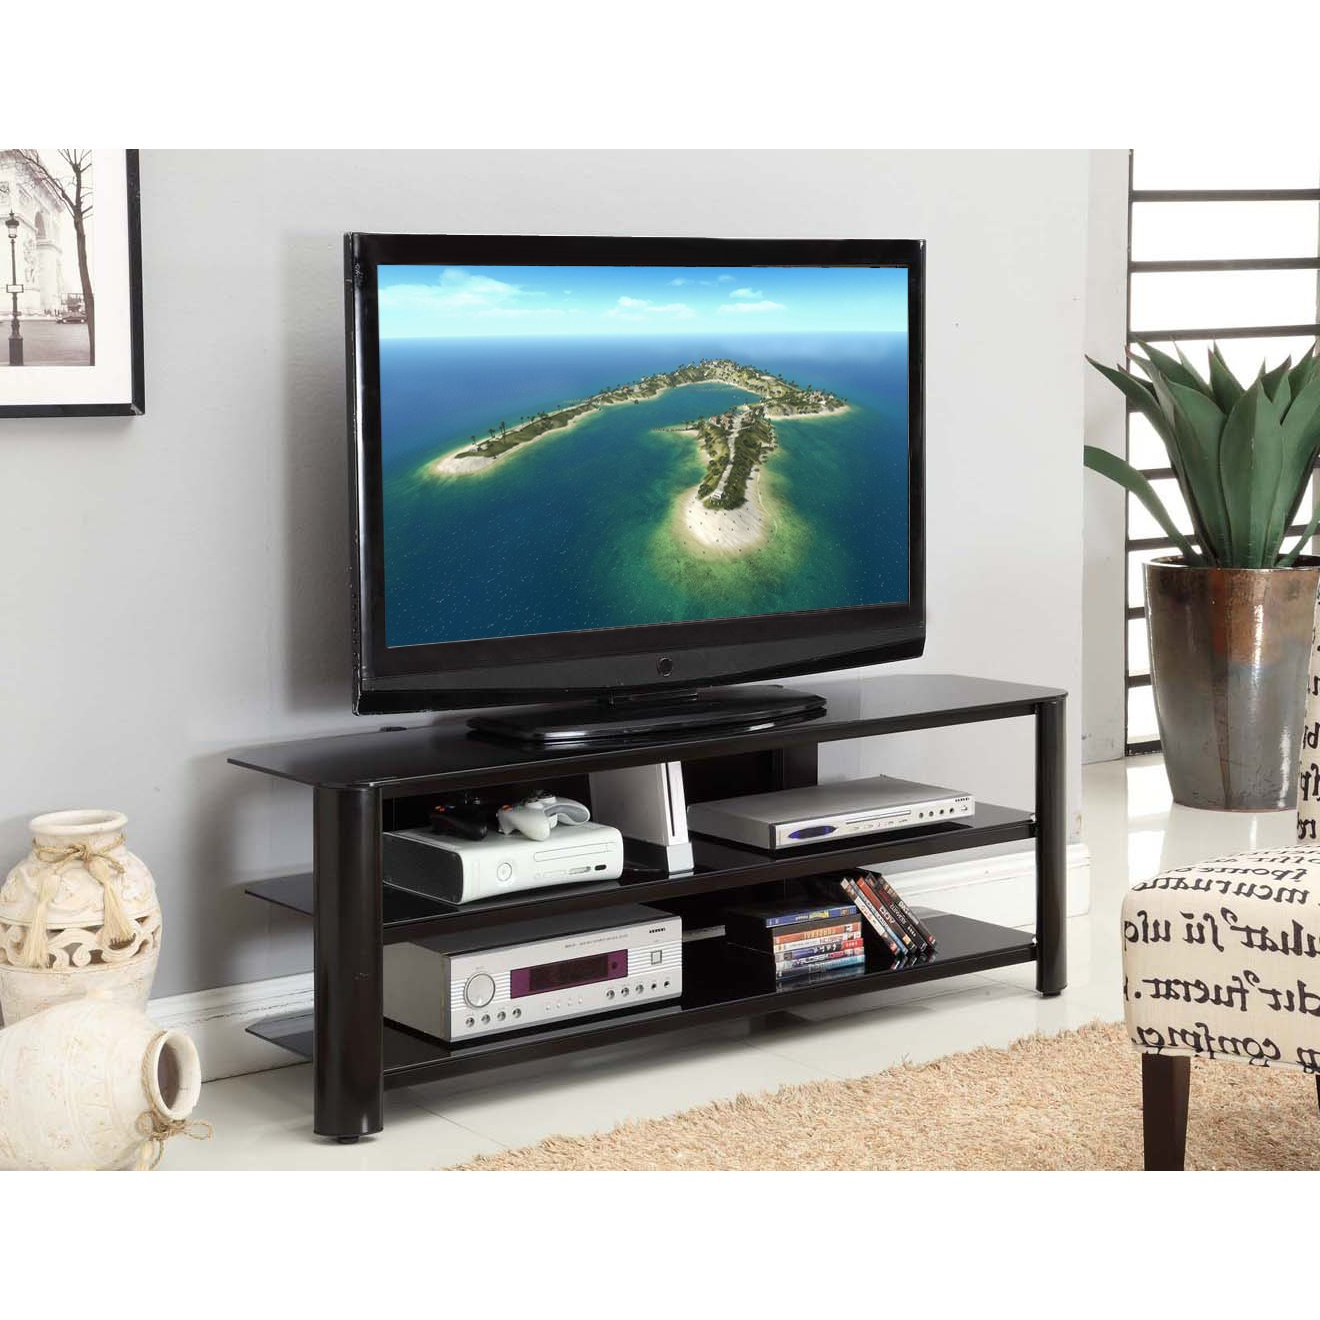 Shop Fold 'n' Snap Oxford Ez Black Innovex Tv Stand – Free Shipping With Regard To Oxford 84 Inch Tv Stands (View 16 of 20)